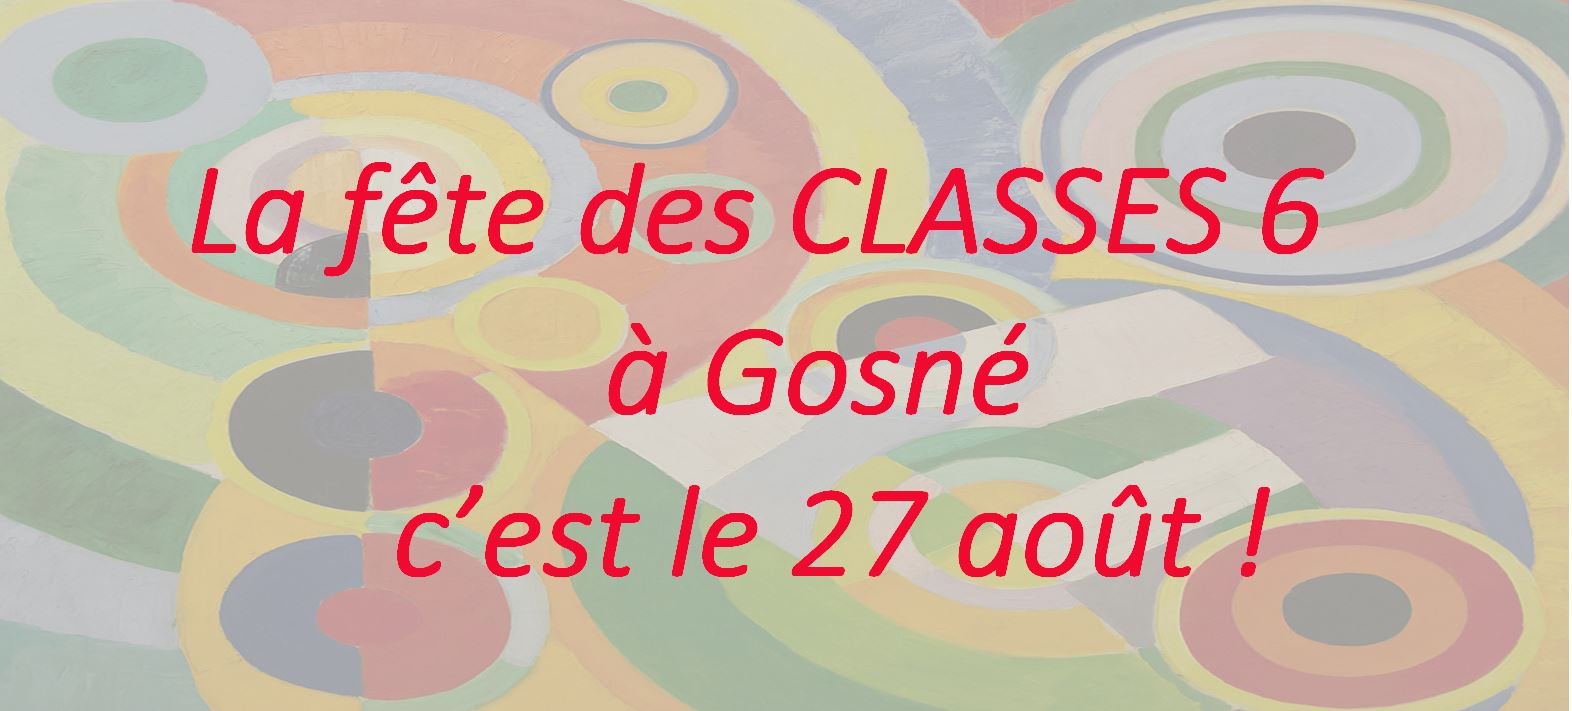 Fête des classes 6